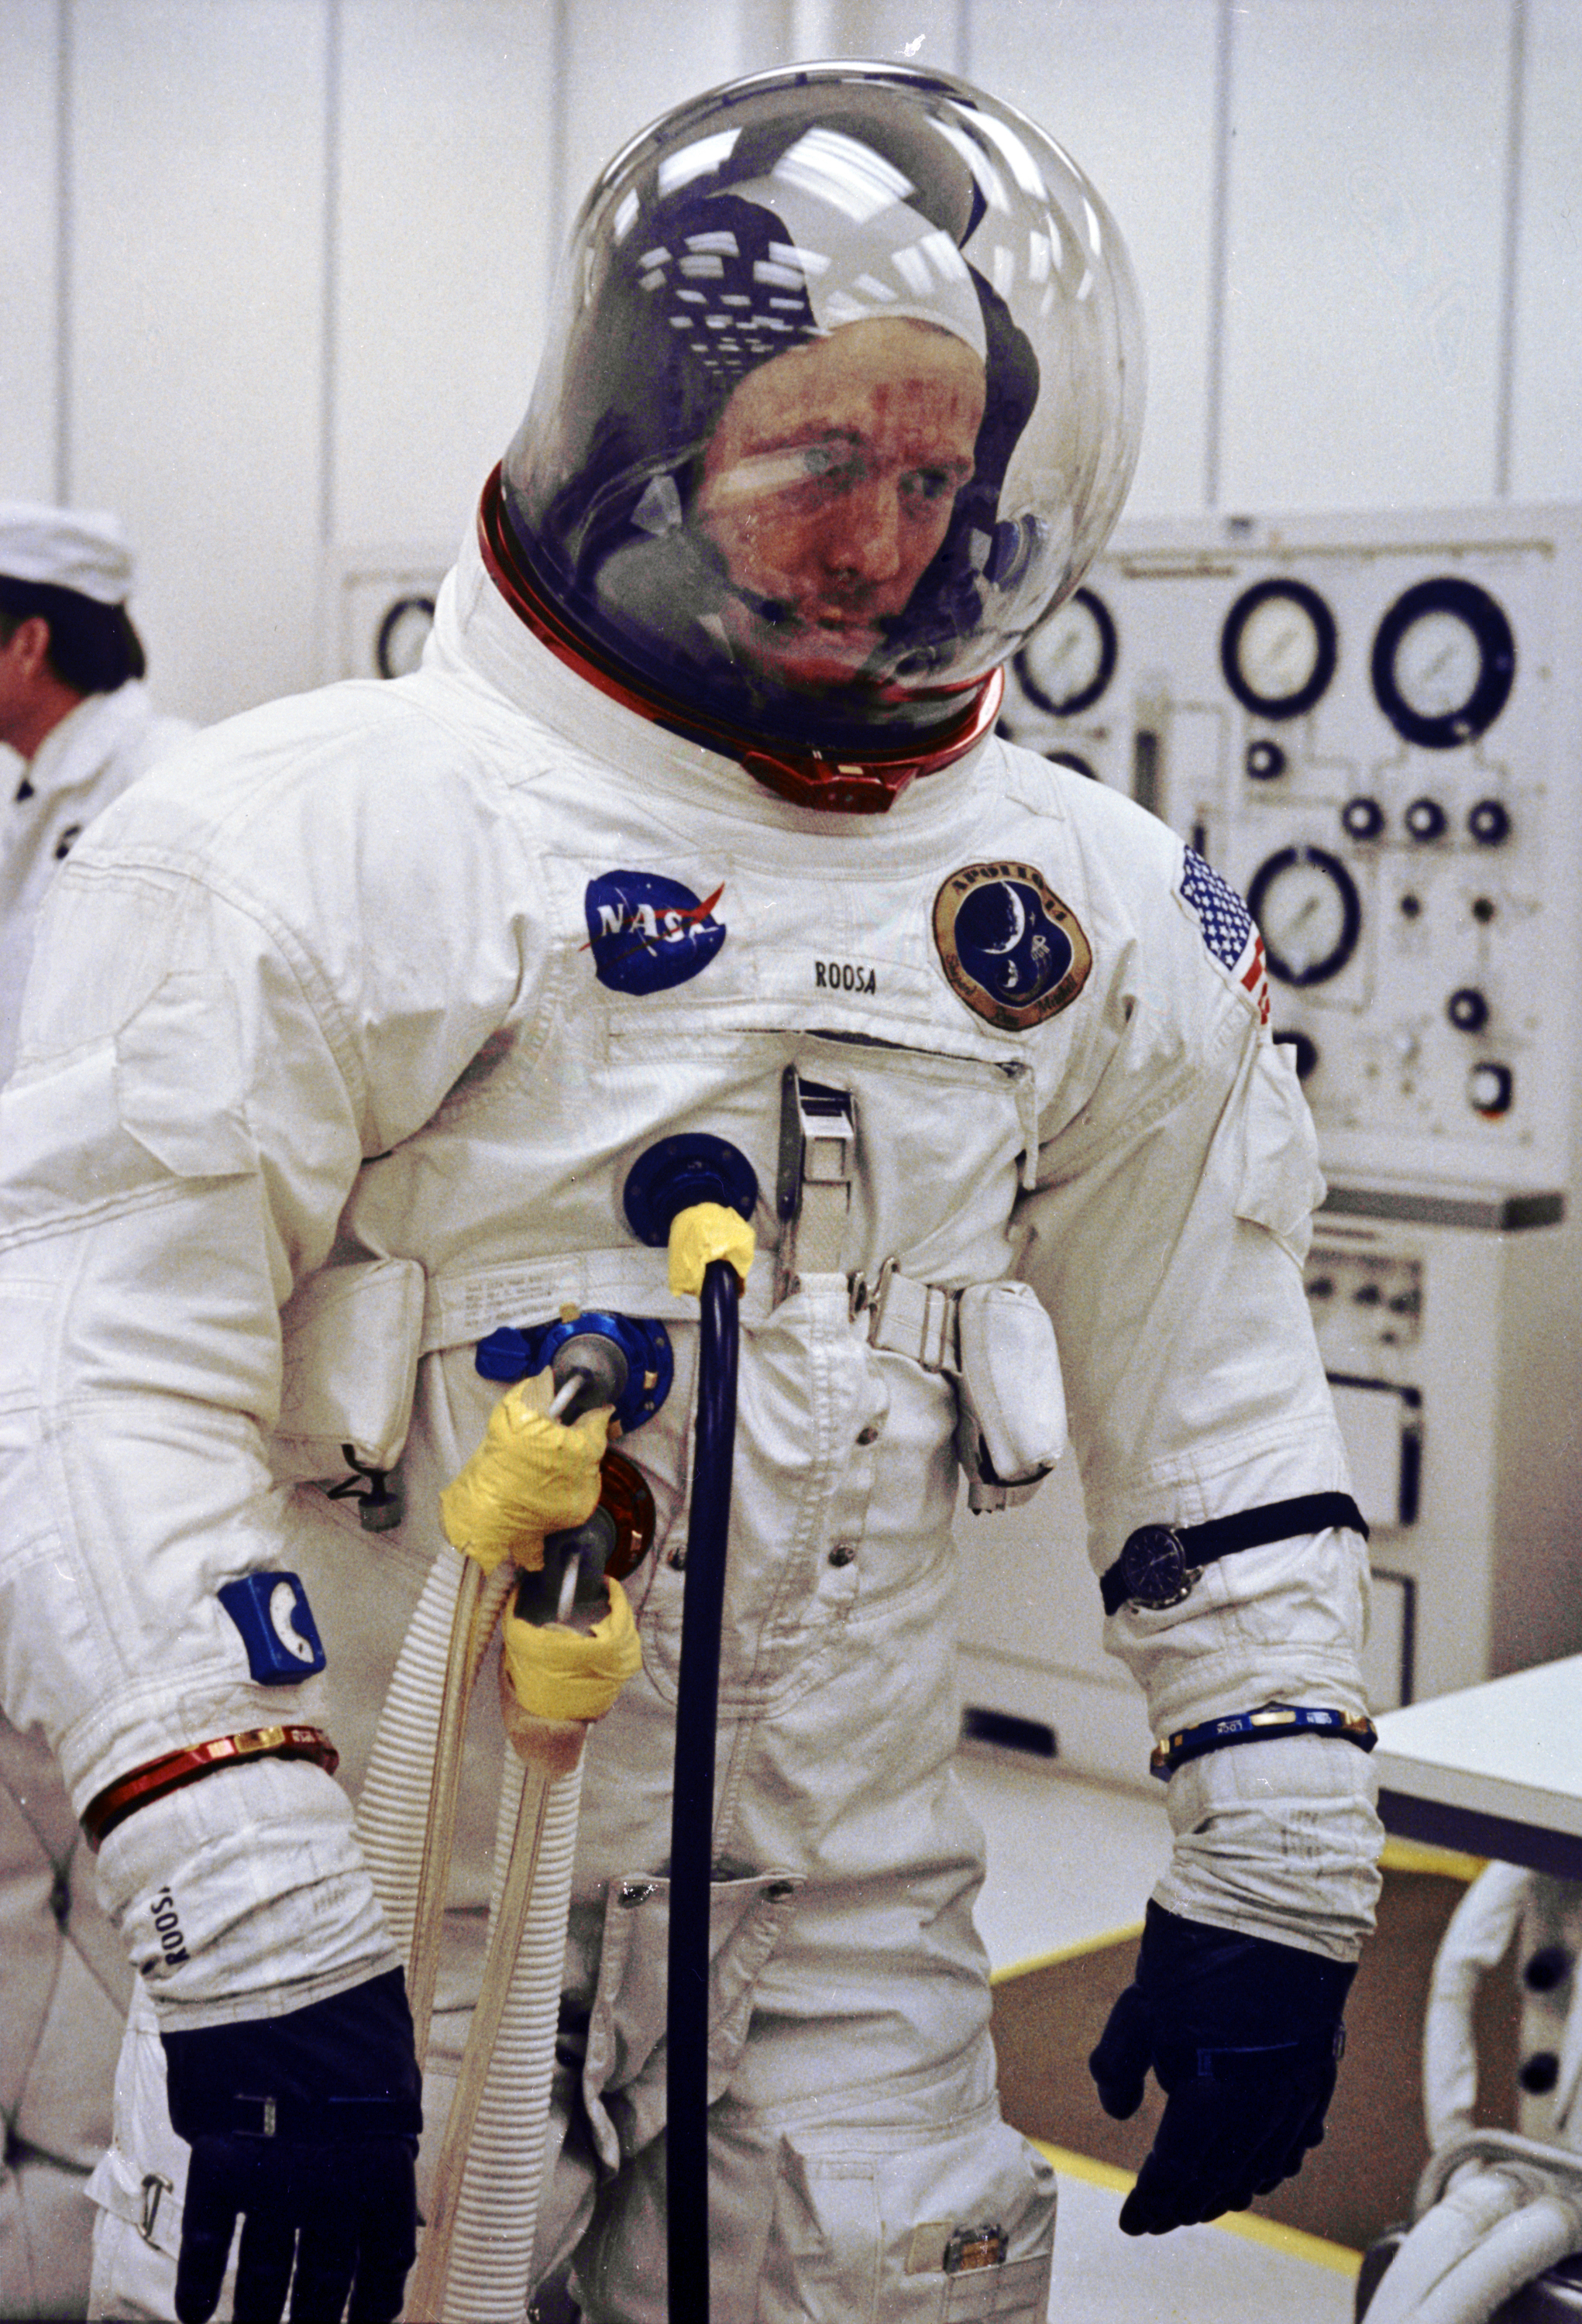 nasa suit template - photo #17